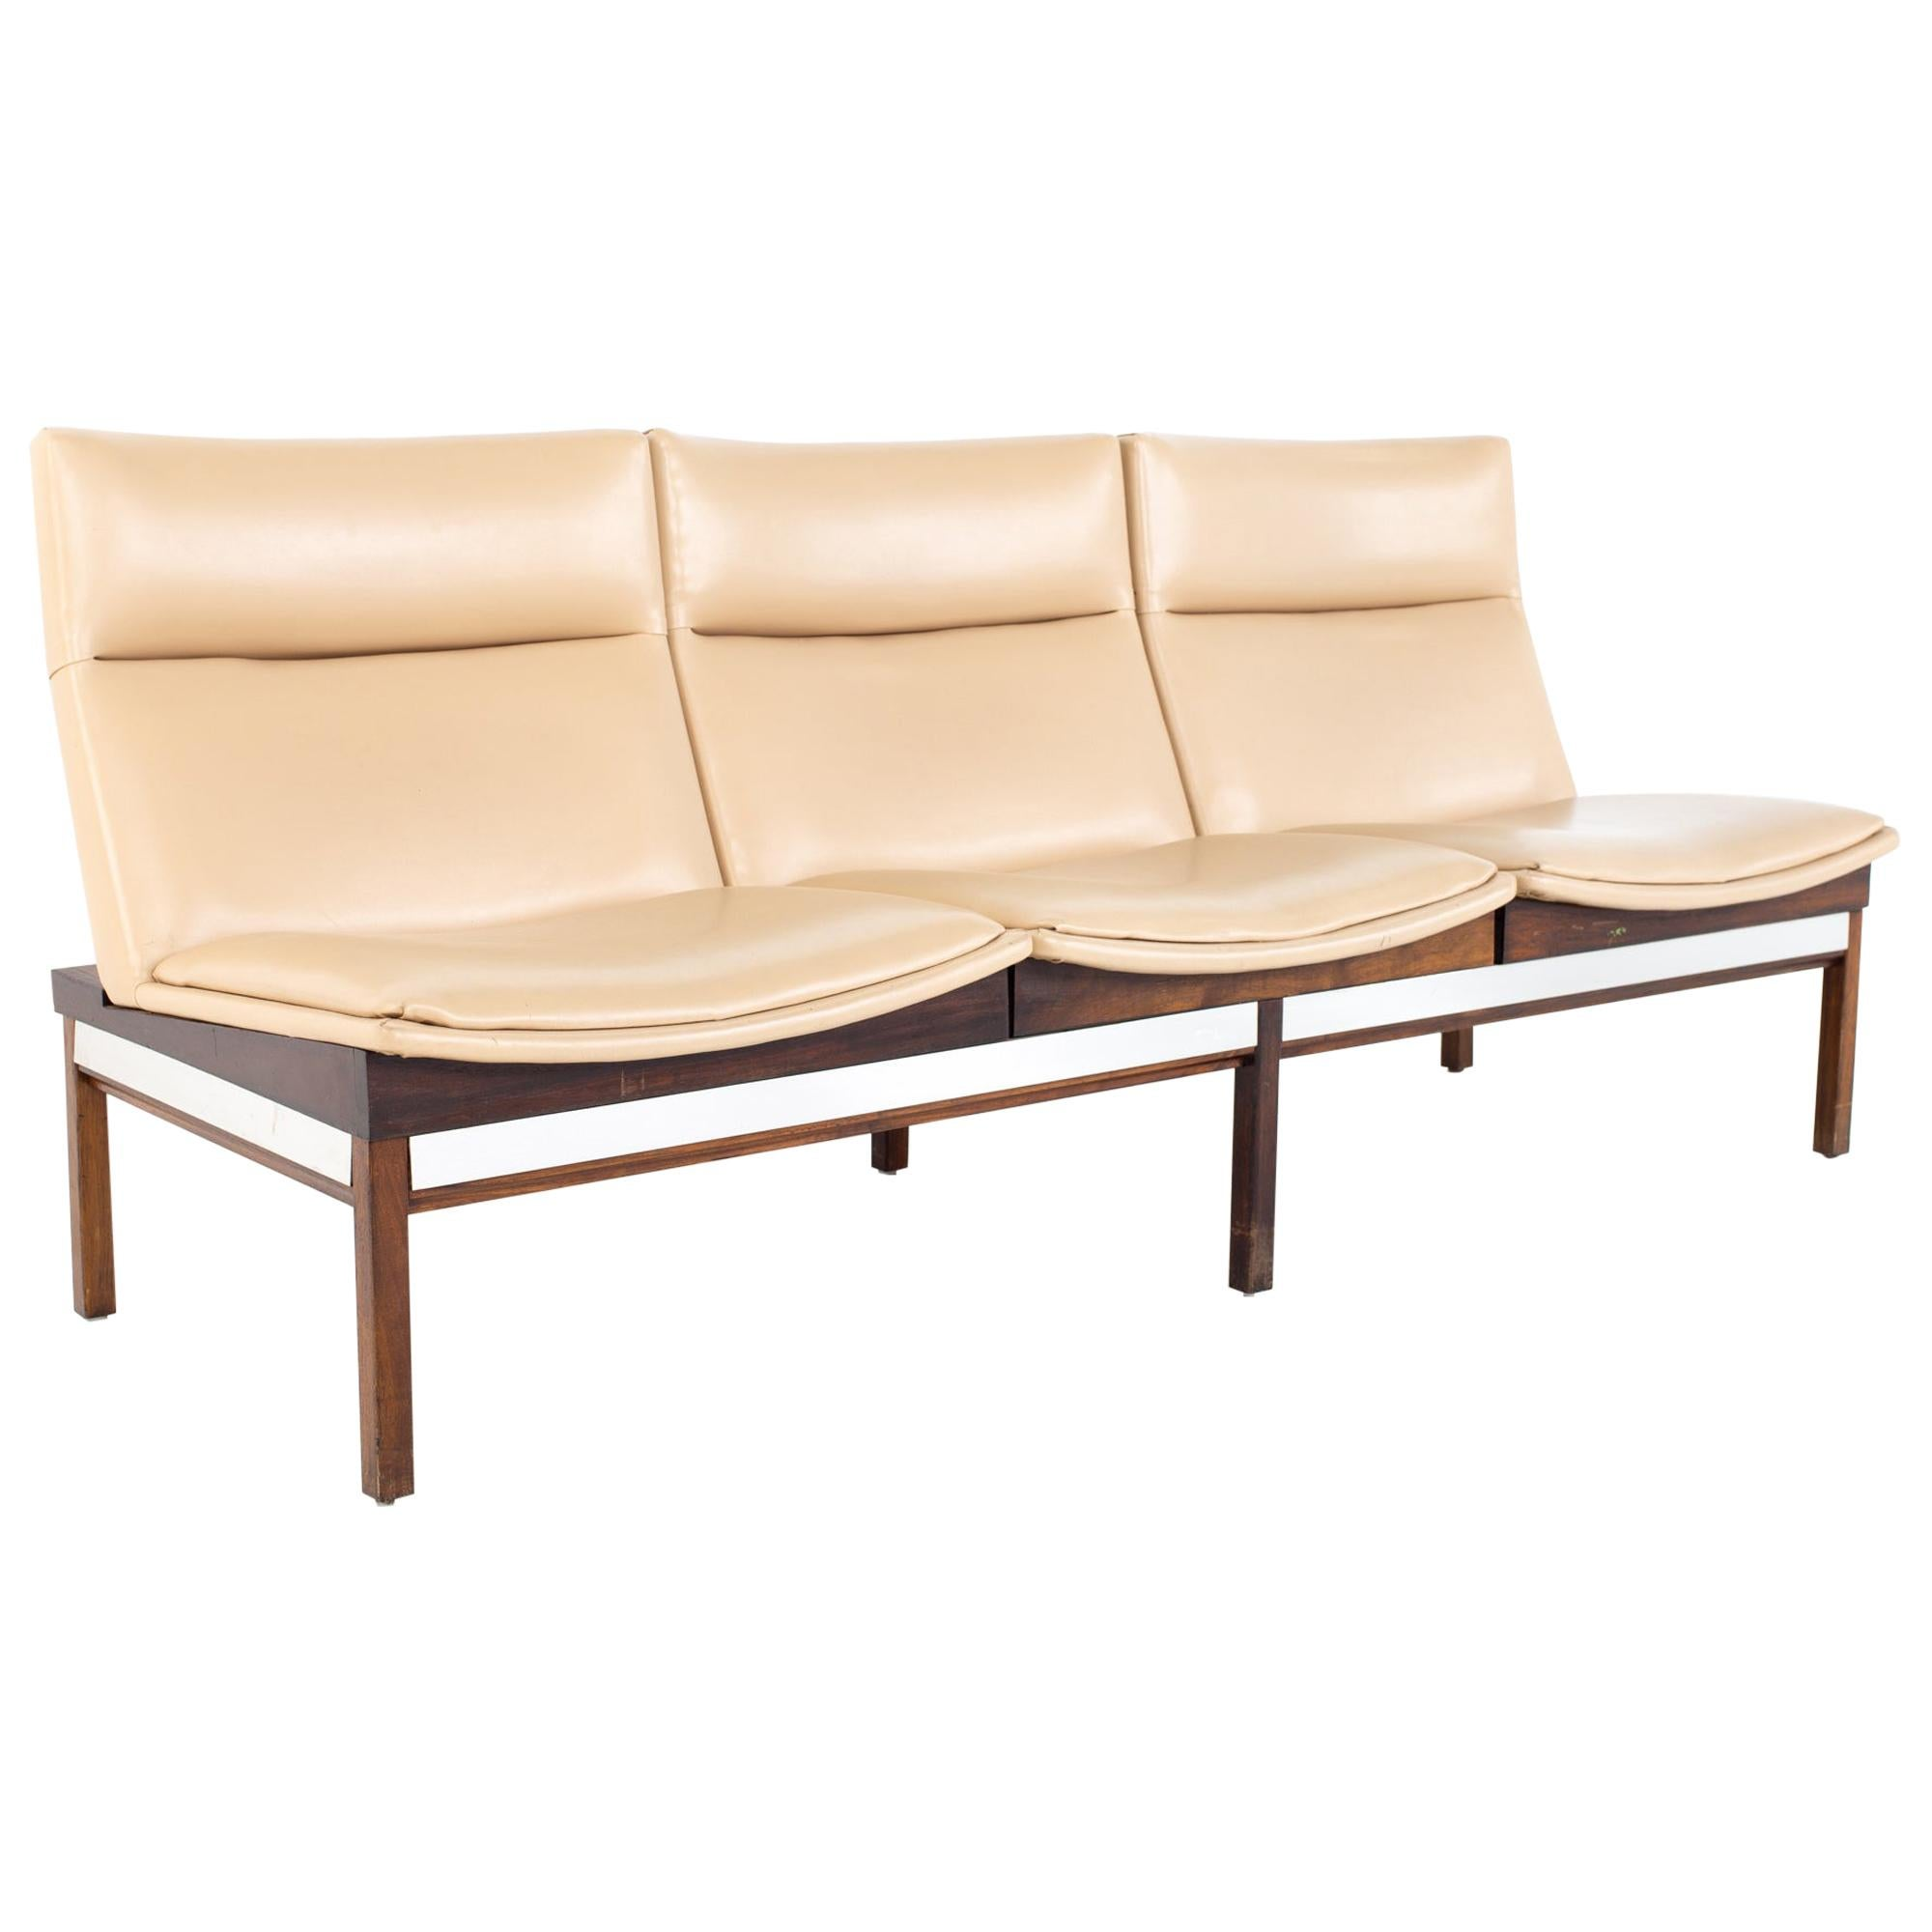 Arthur Umanoff Mid Century Walnut and Stainless Three Seat Sofa Bench